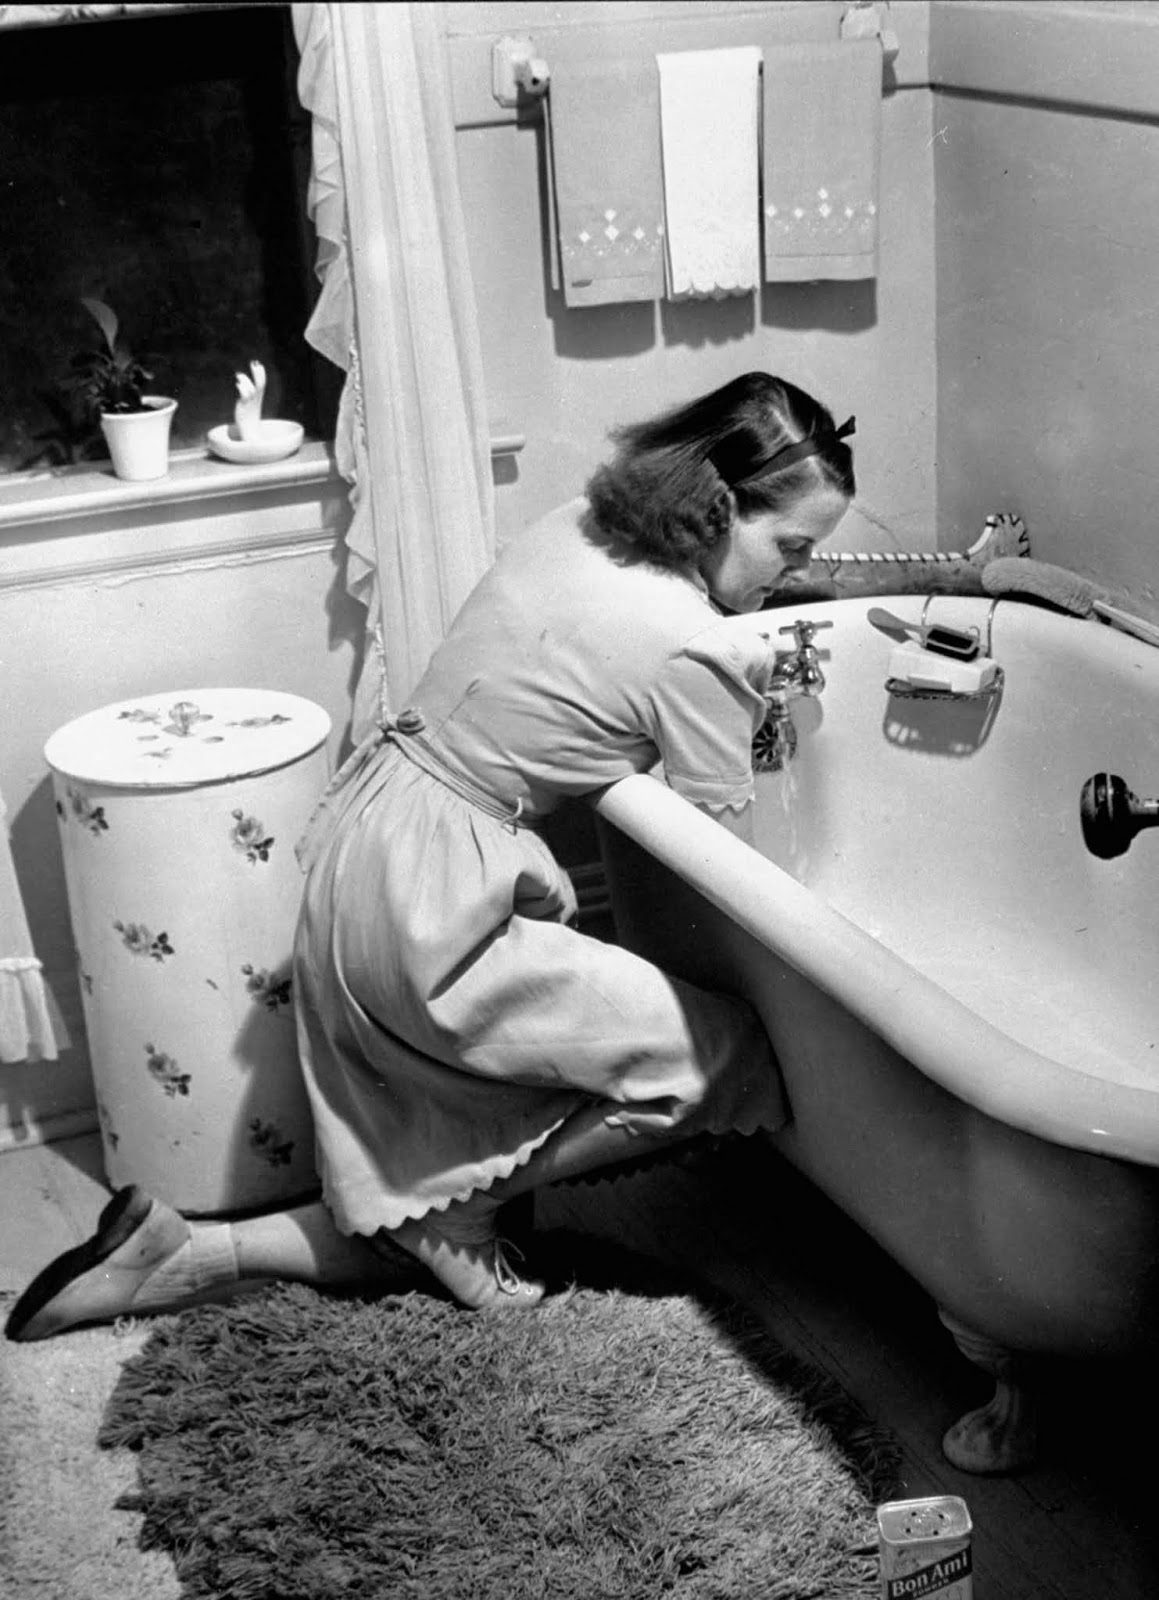 Jane scrubbing the bathtub in bathroom at home.